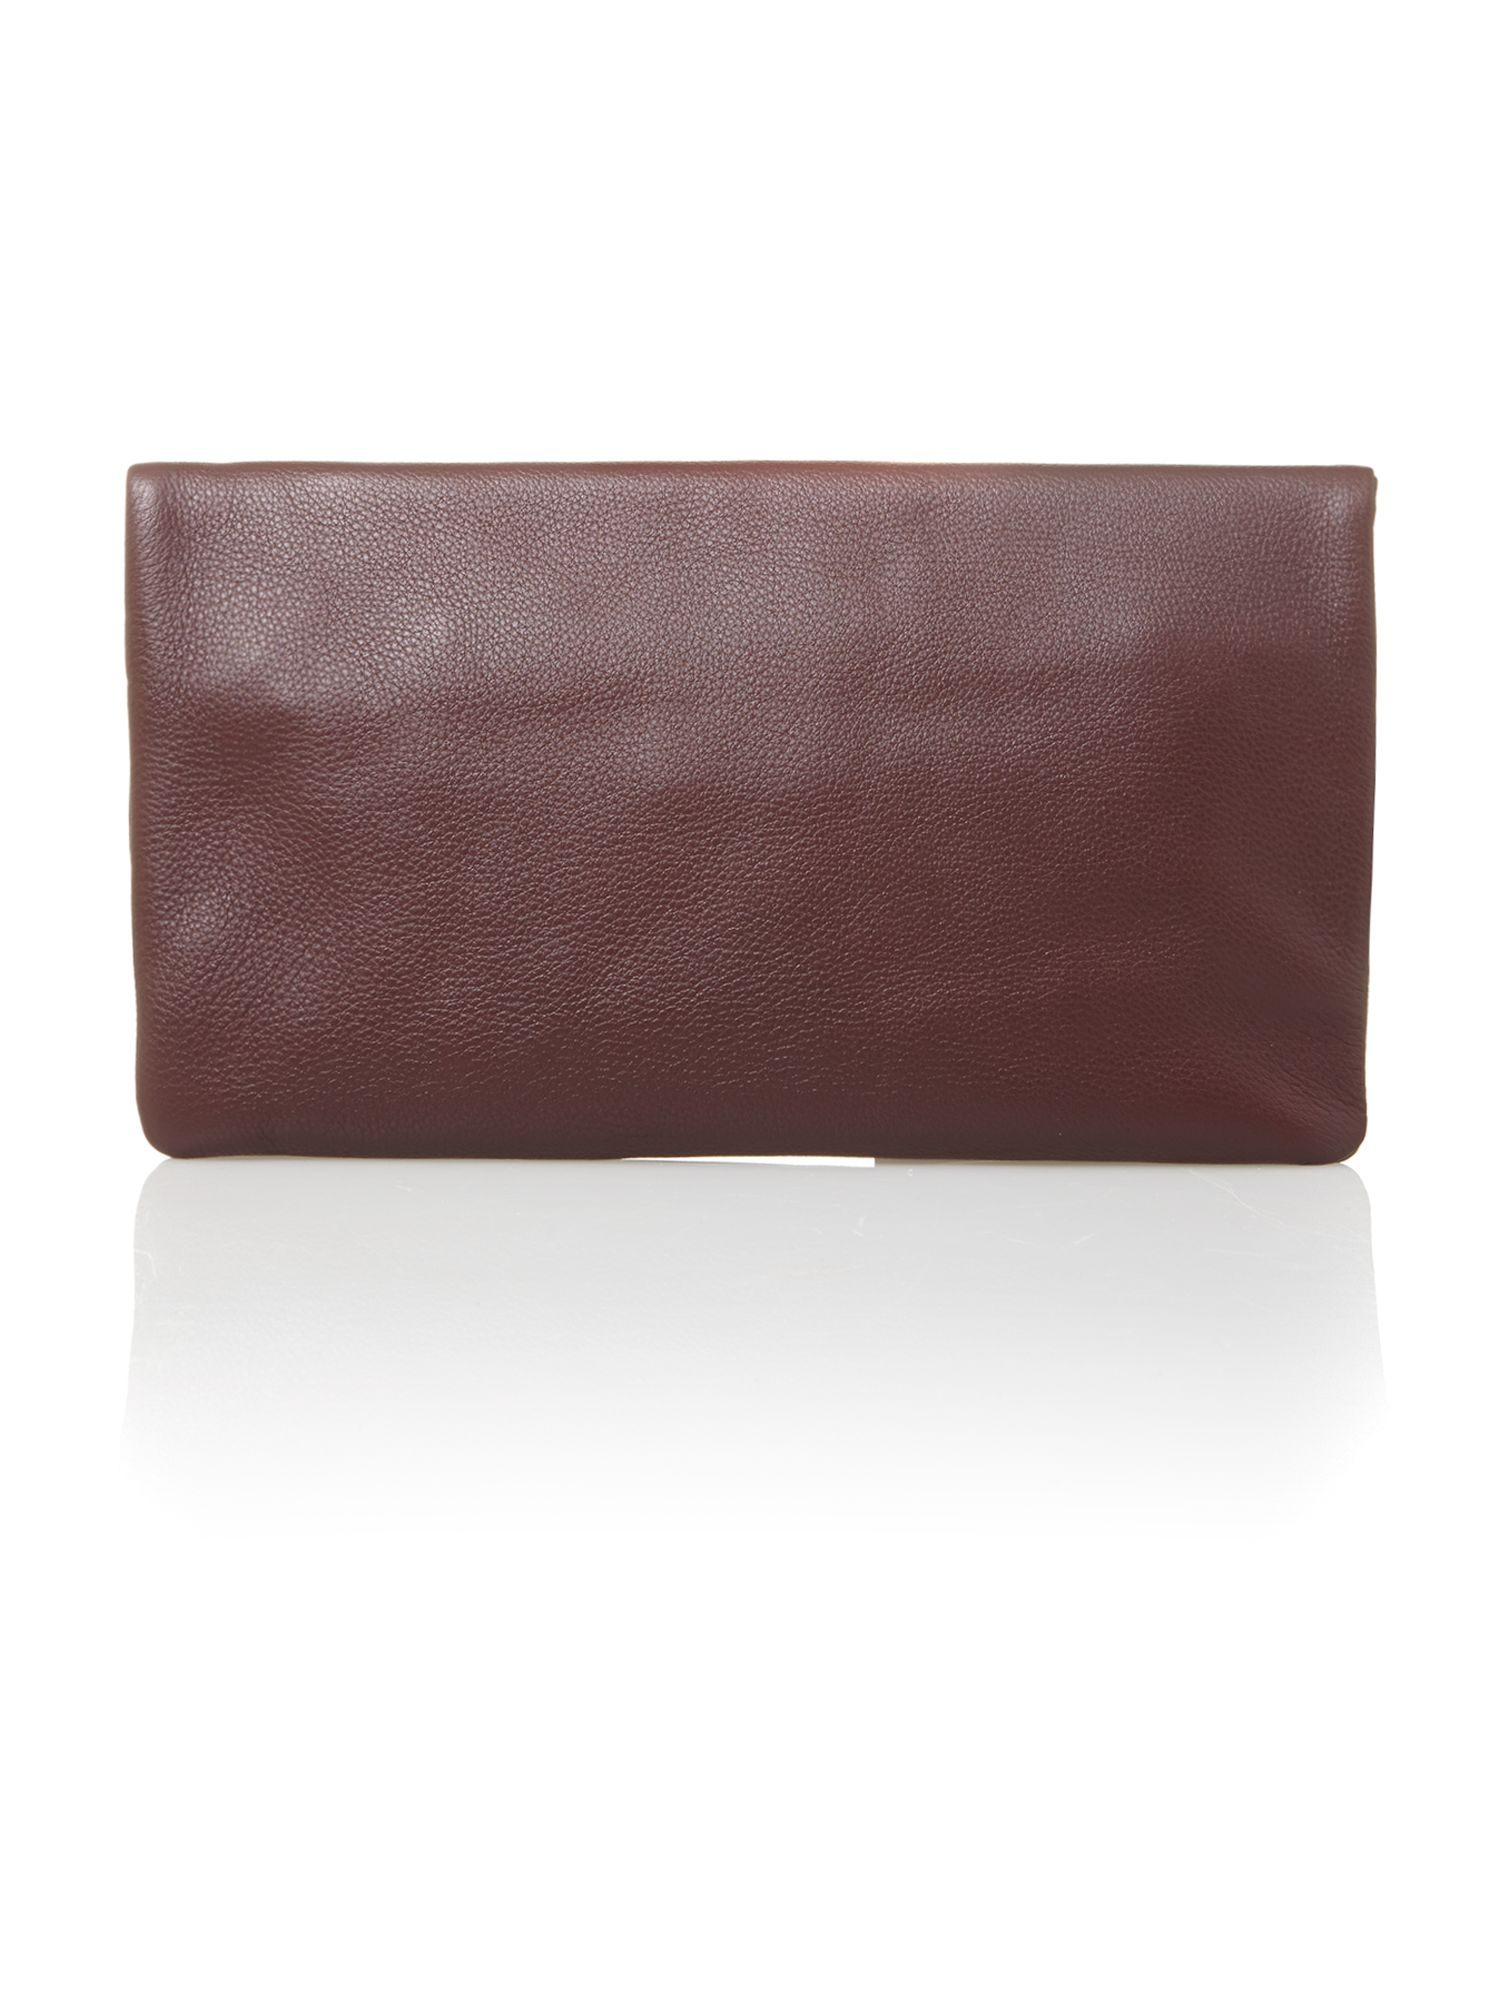 Jazz classic clutch bag